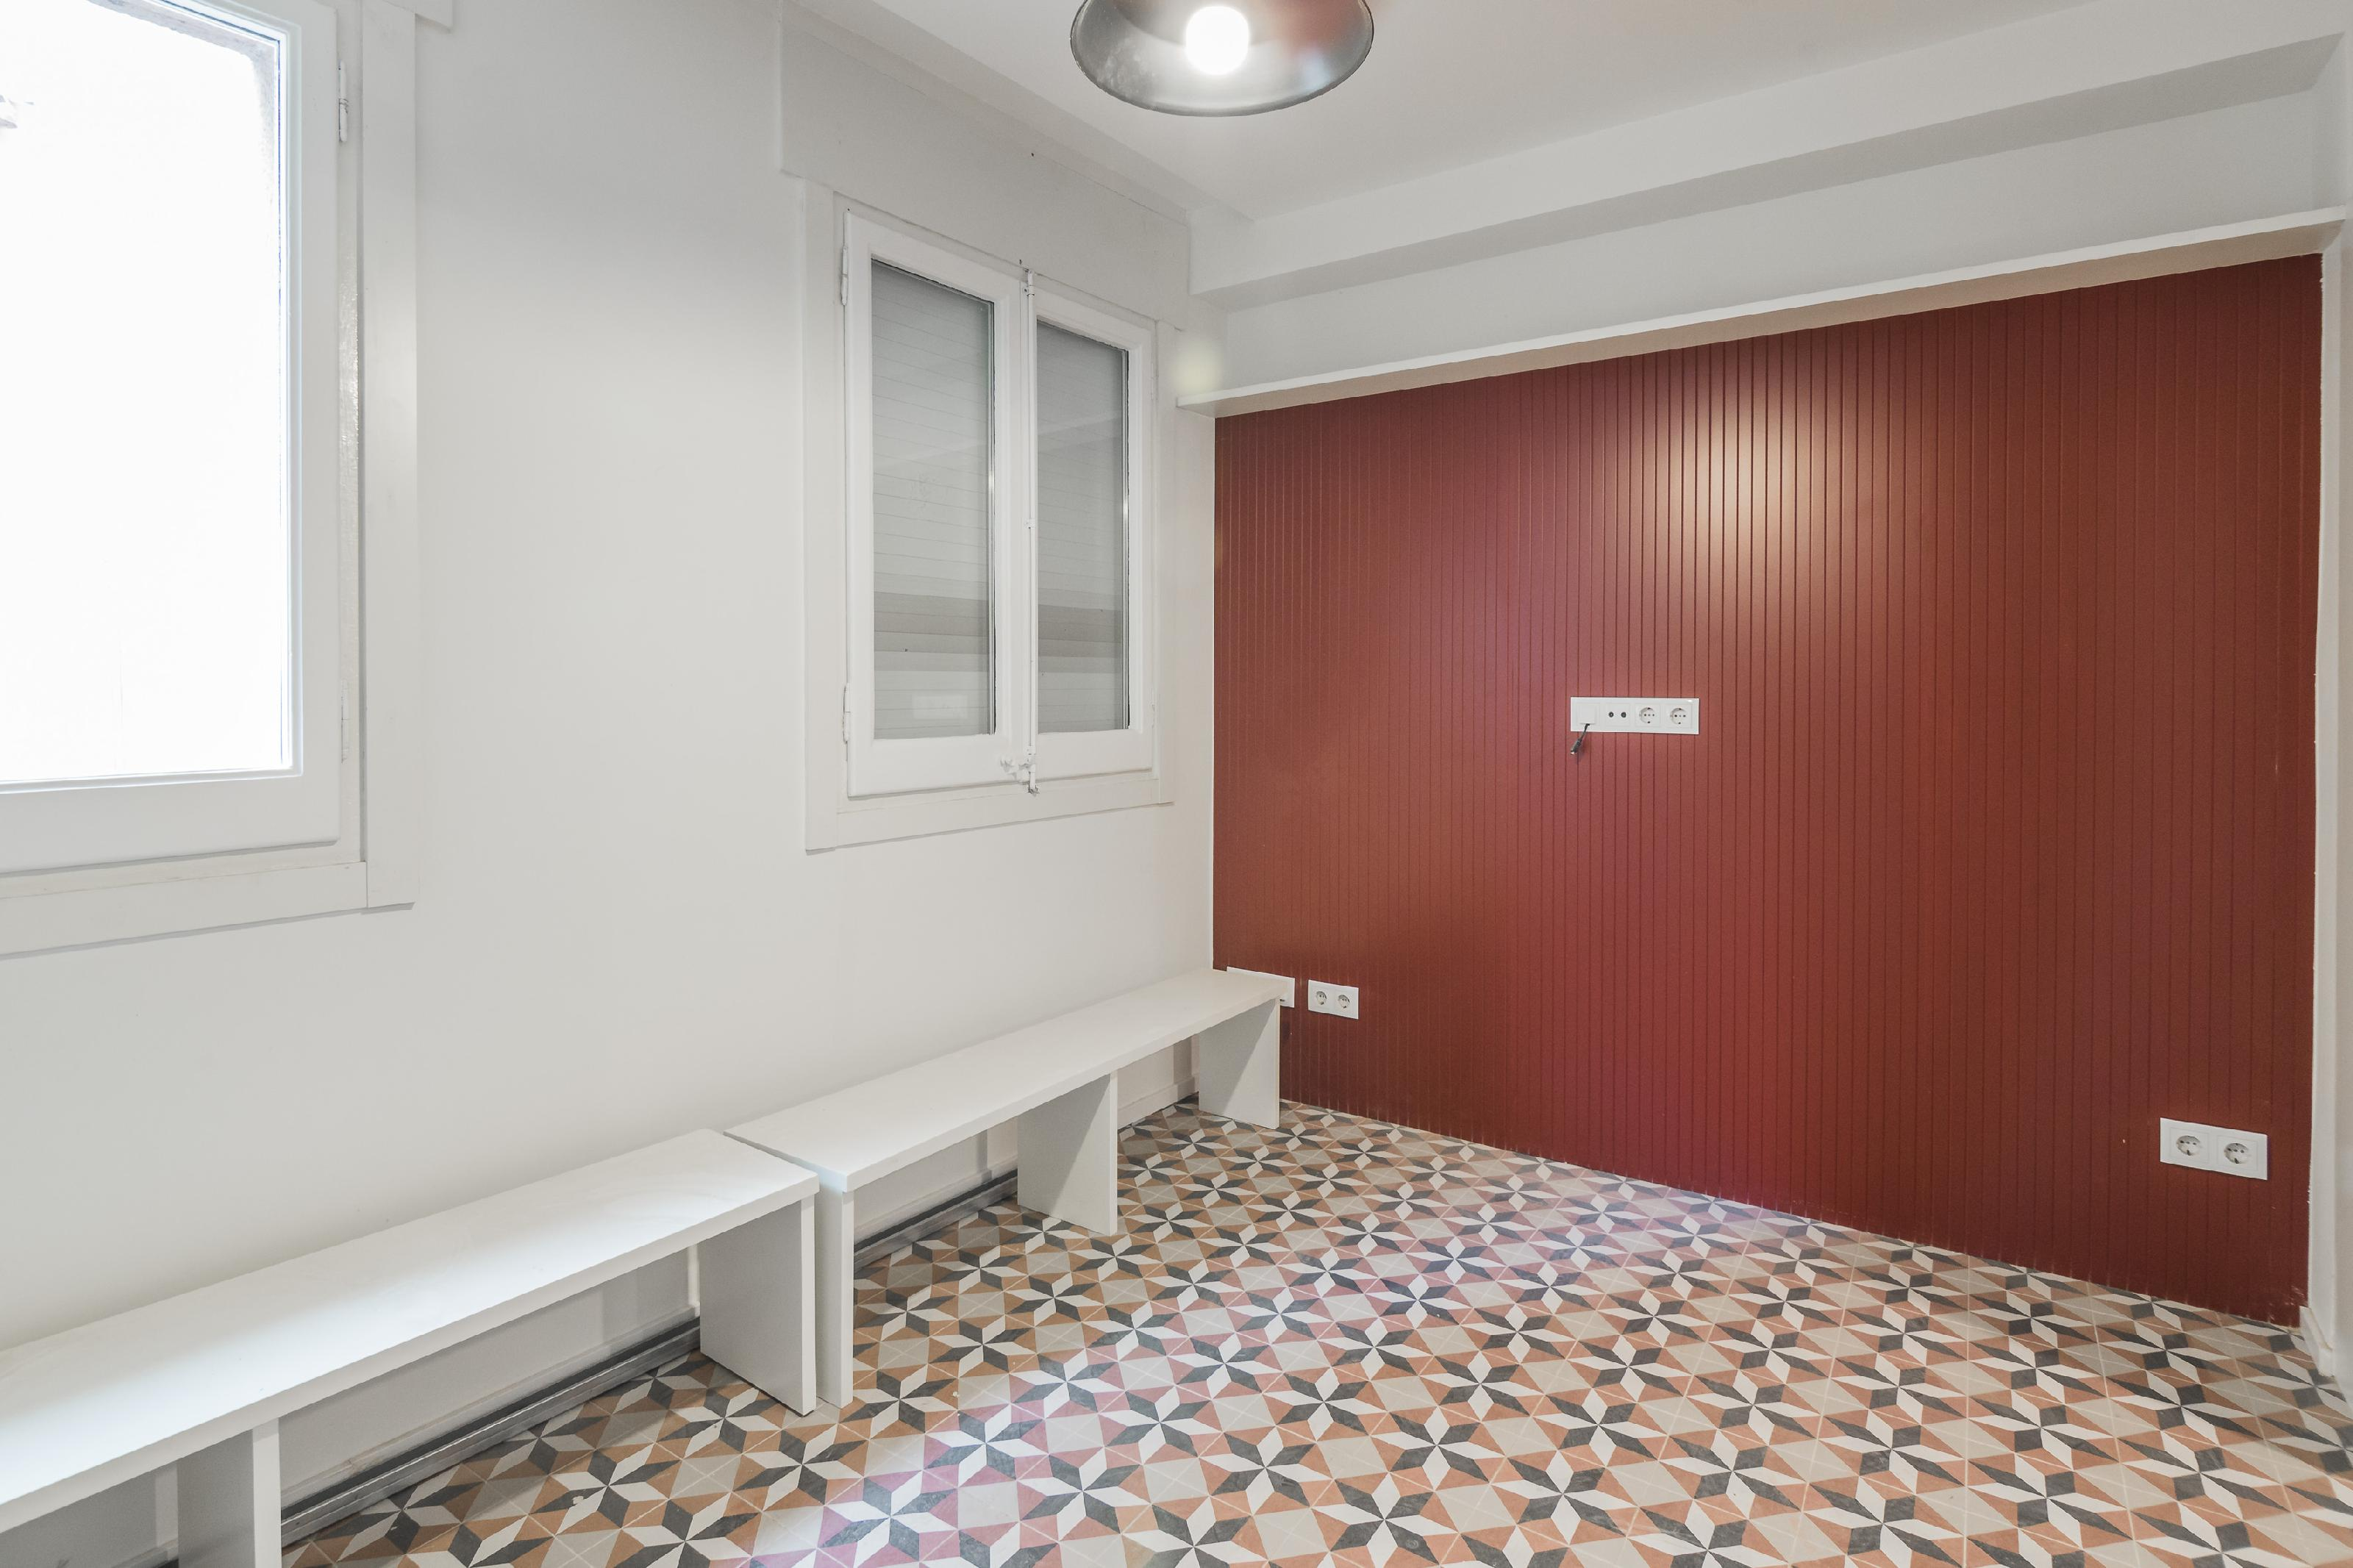 237520 Flat for sale in Ciutat Vella, St. Pere St. Caterina and La Ribera 21